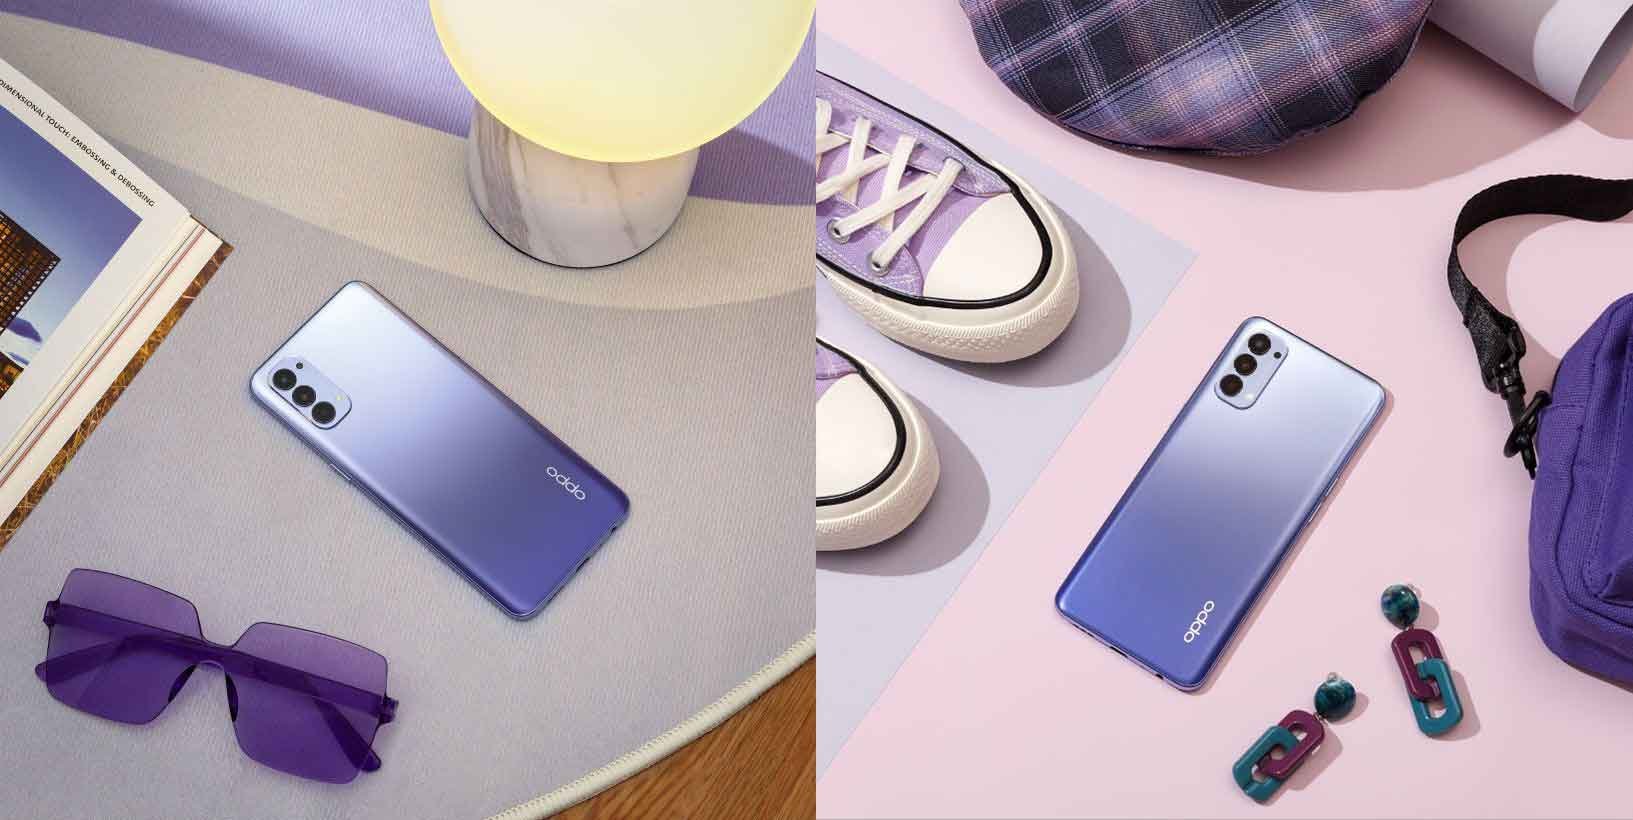 OPPO expands Reno4 offerings in the region with a new trendsetting colour variant